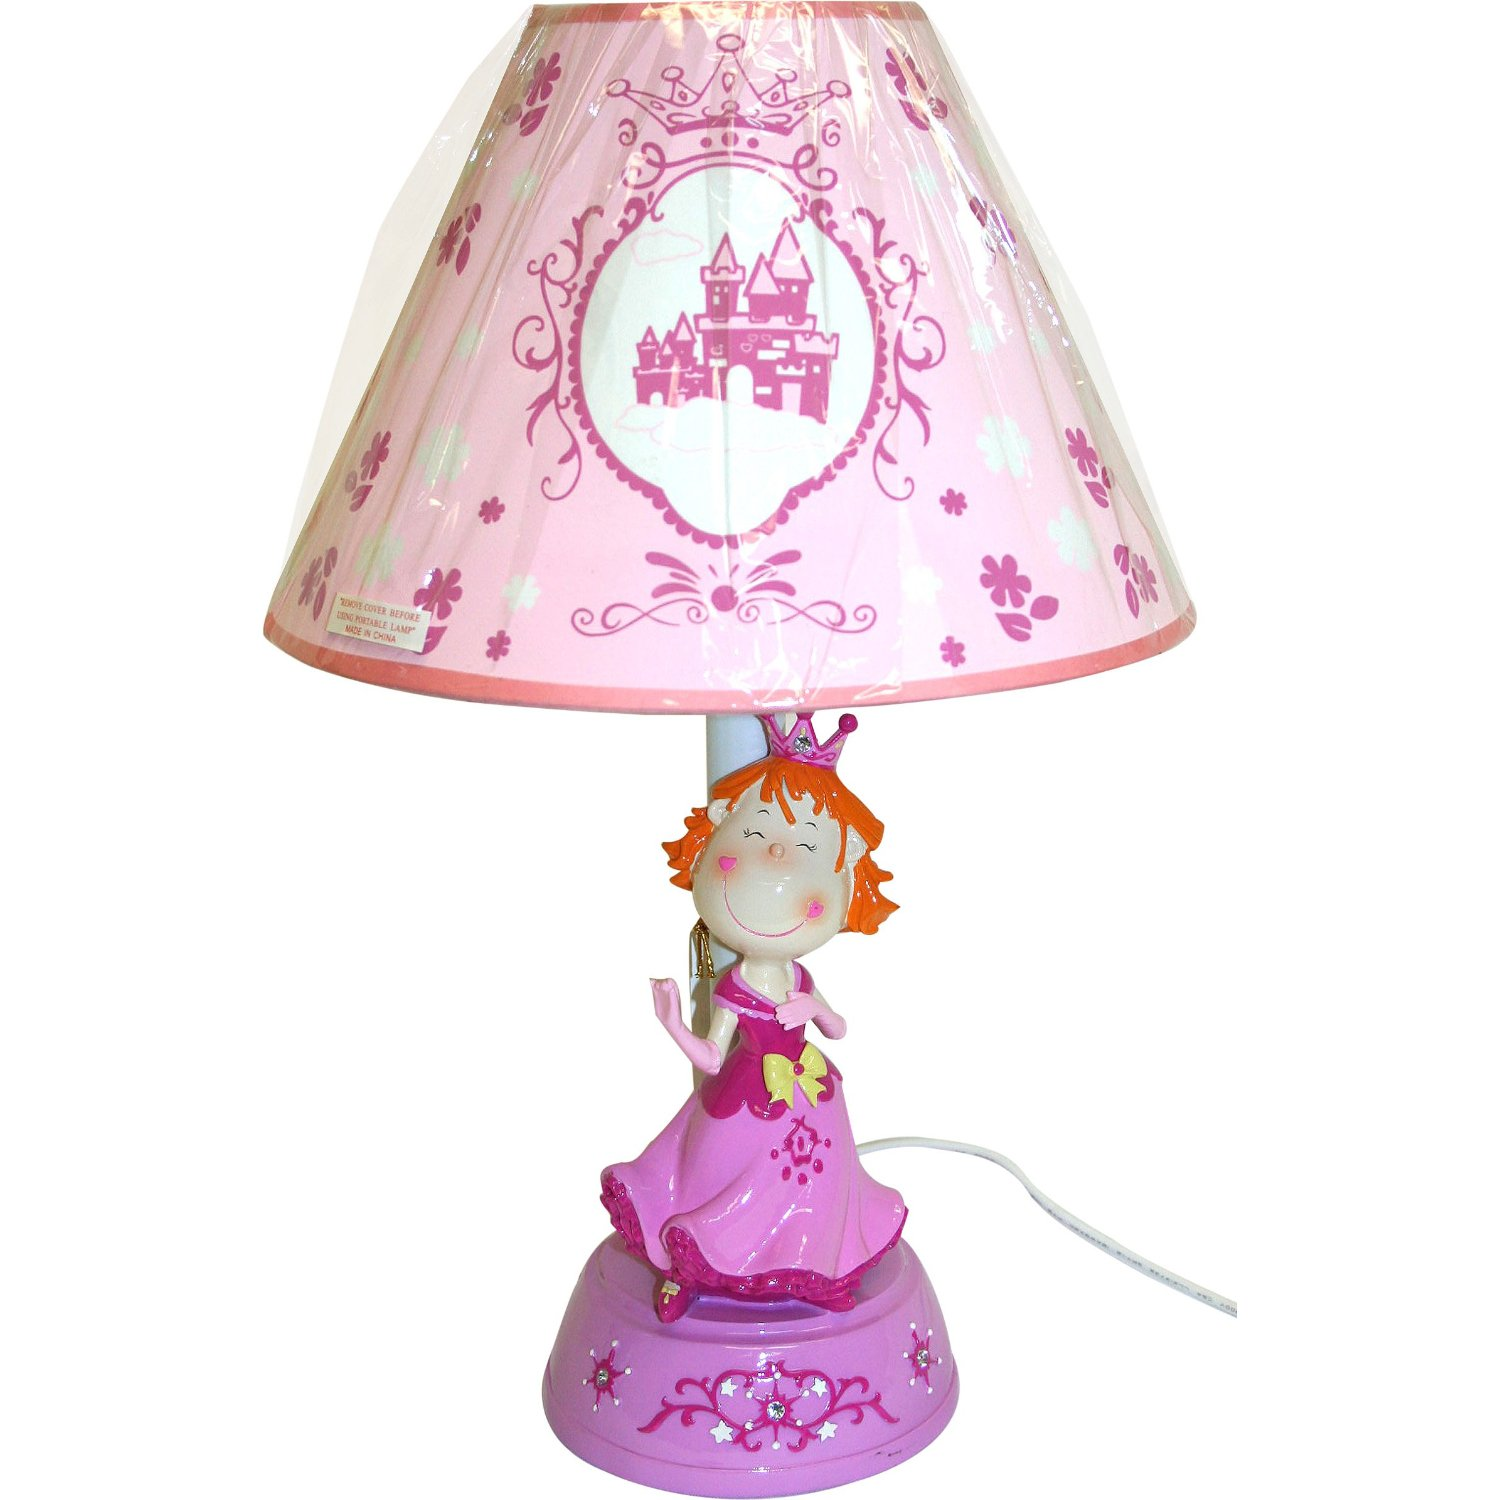 KMP Gifts Princess Lamp with Shade photo